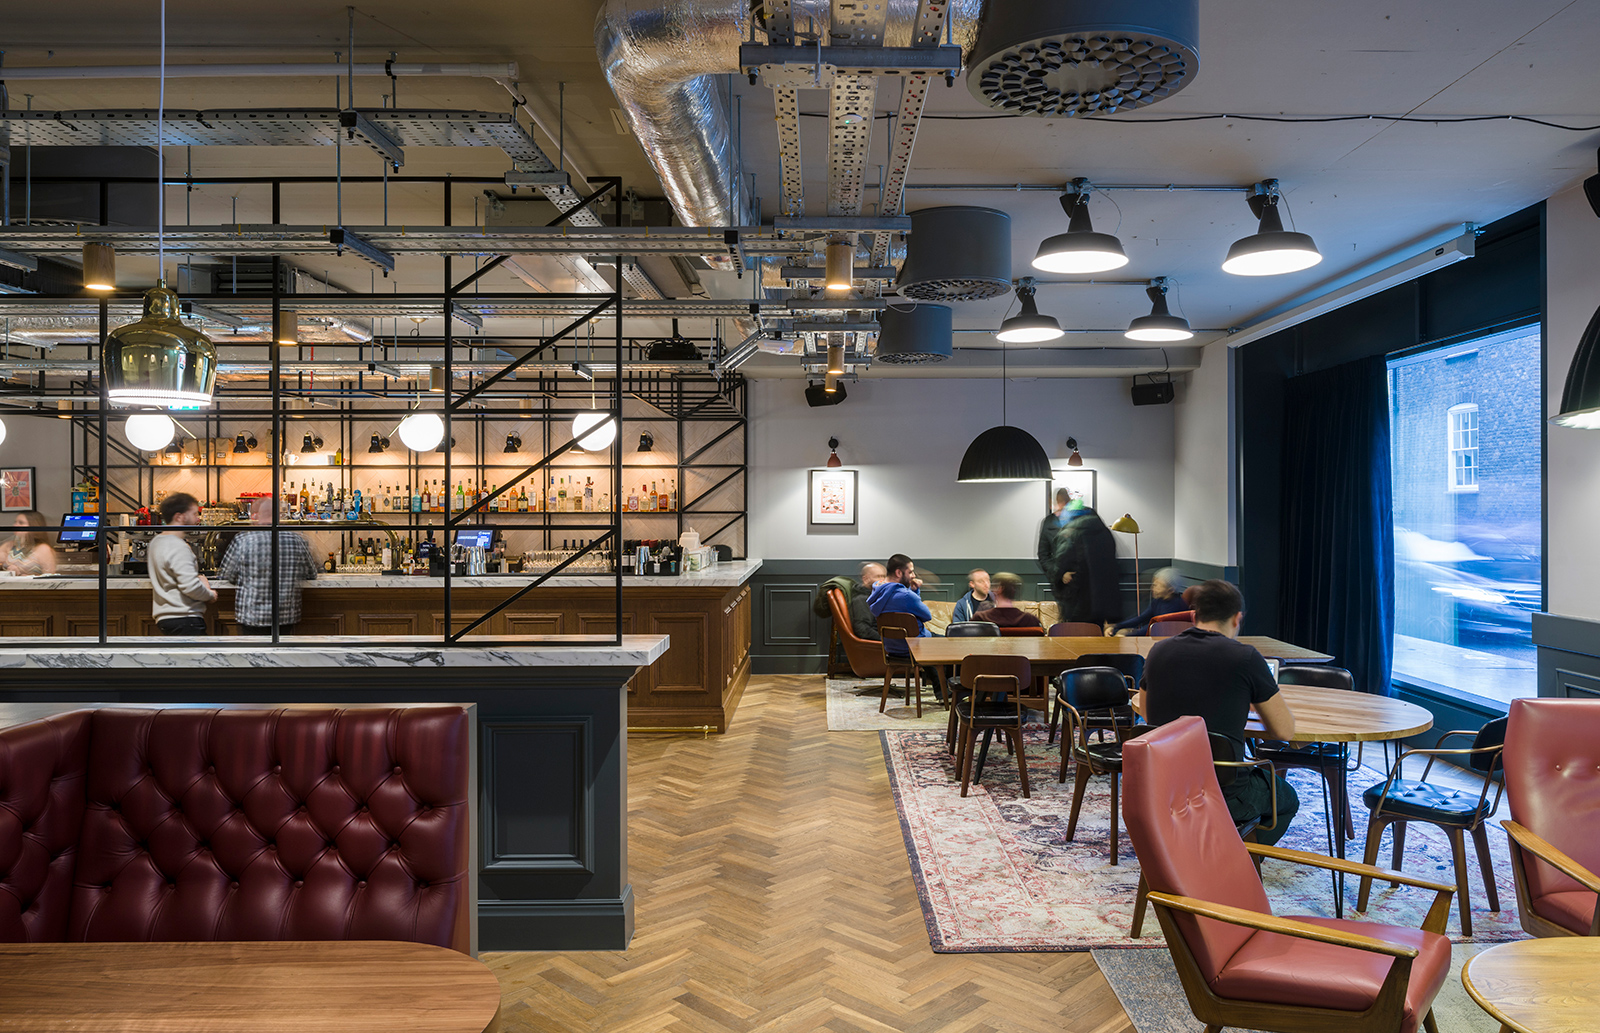 Saatchi & Saatchi's new workspace at 40 Chancery Lane in London